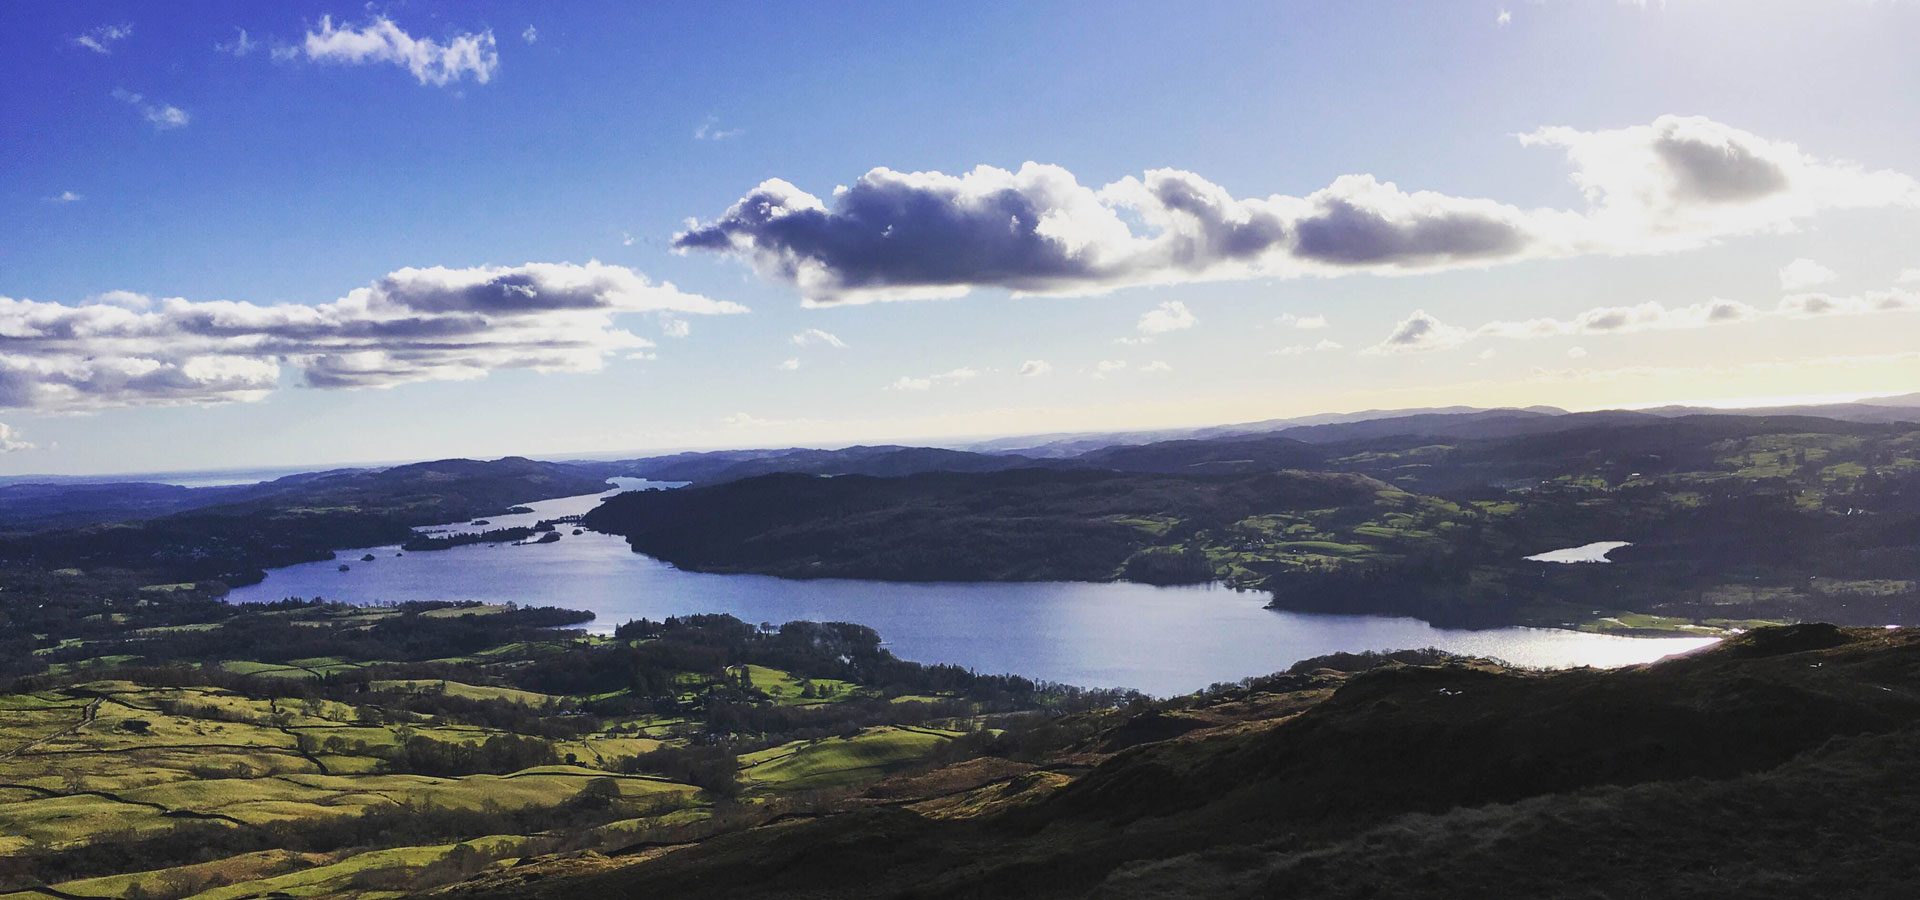 COME DISCOVER THE LAKE DISTRICT